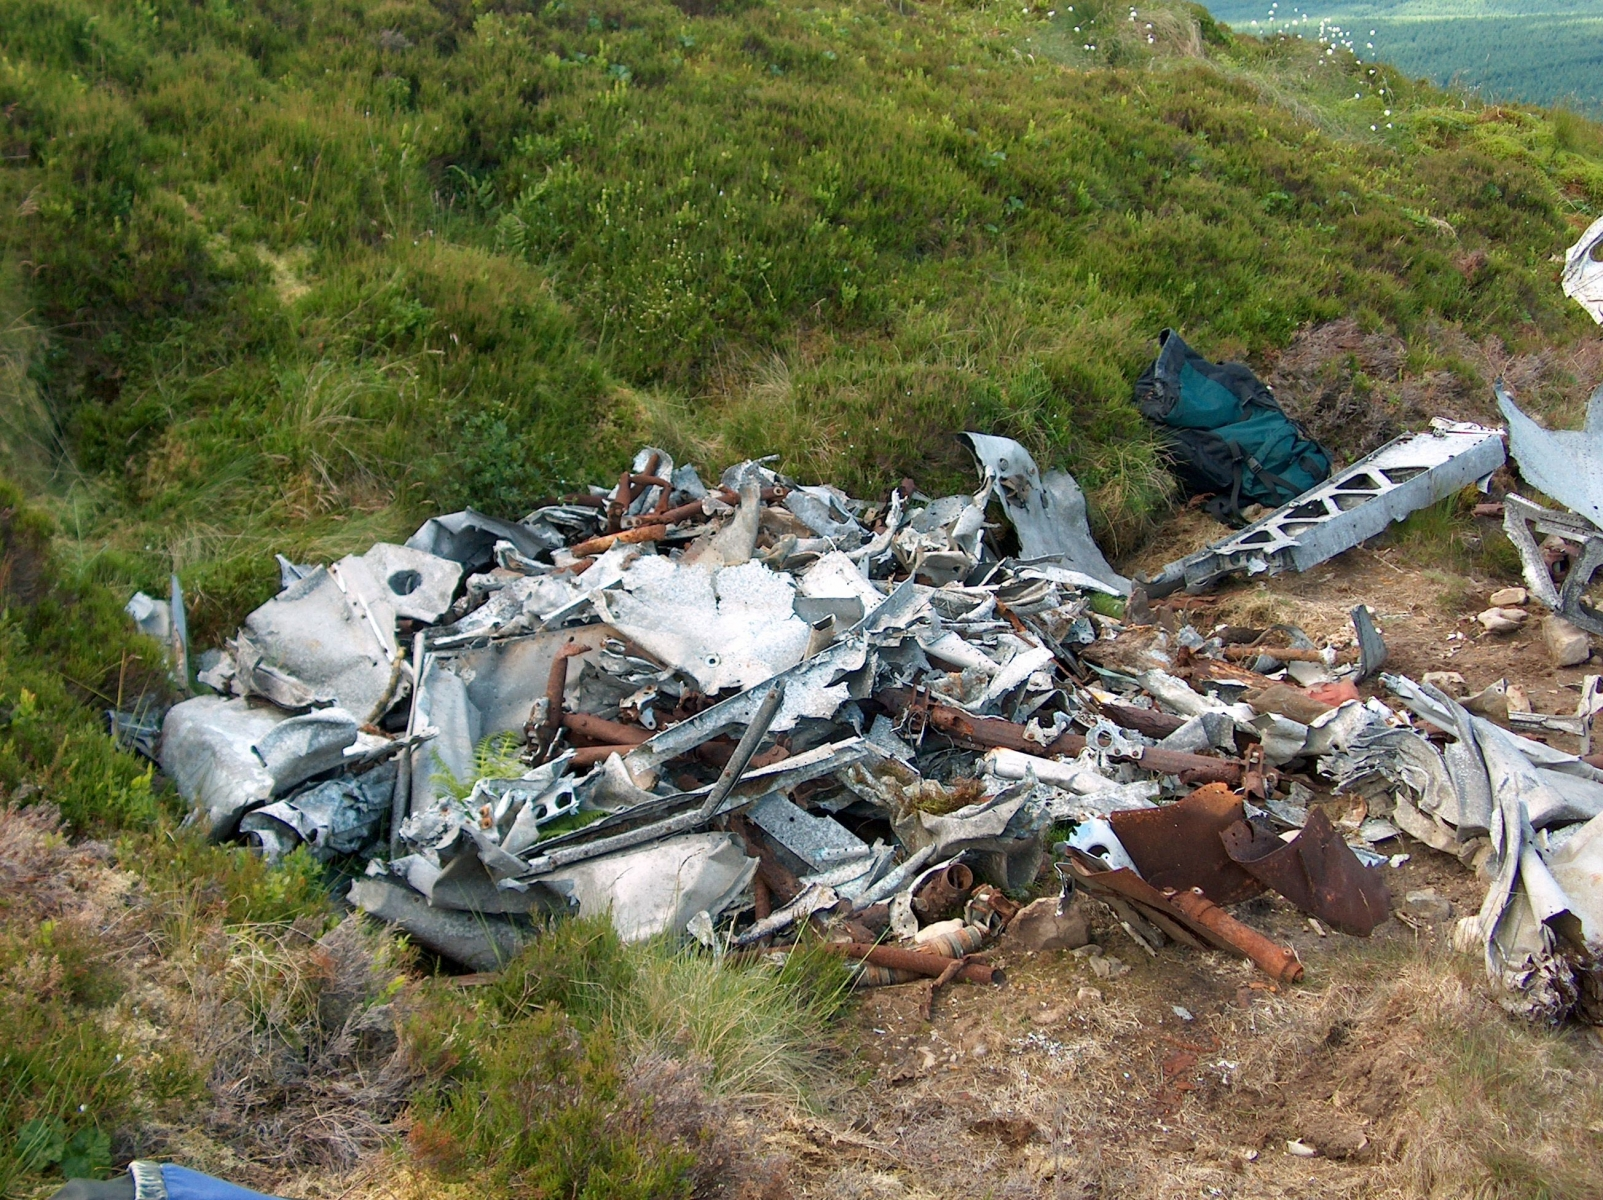 The wreckage of Hurricane Z3150 on the fells above Deadwater.